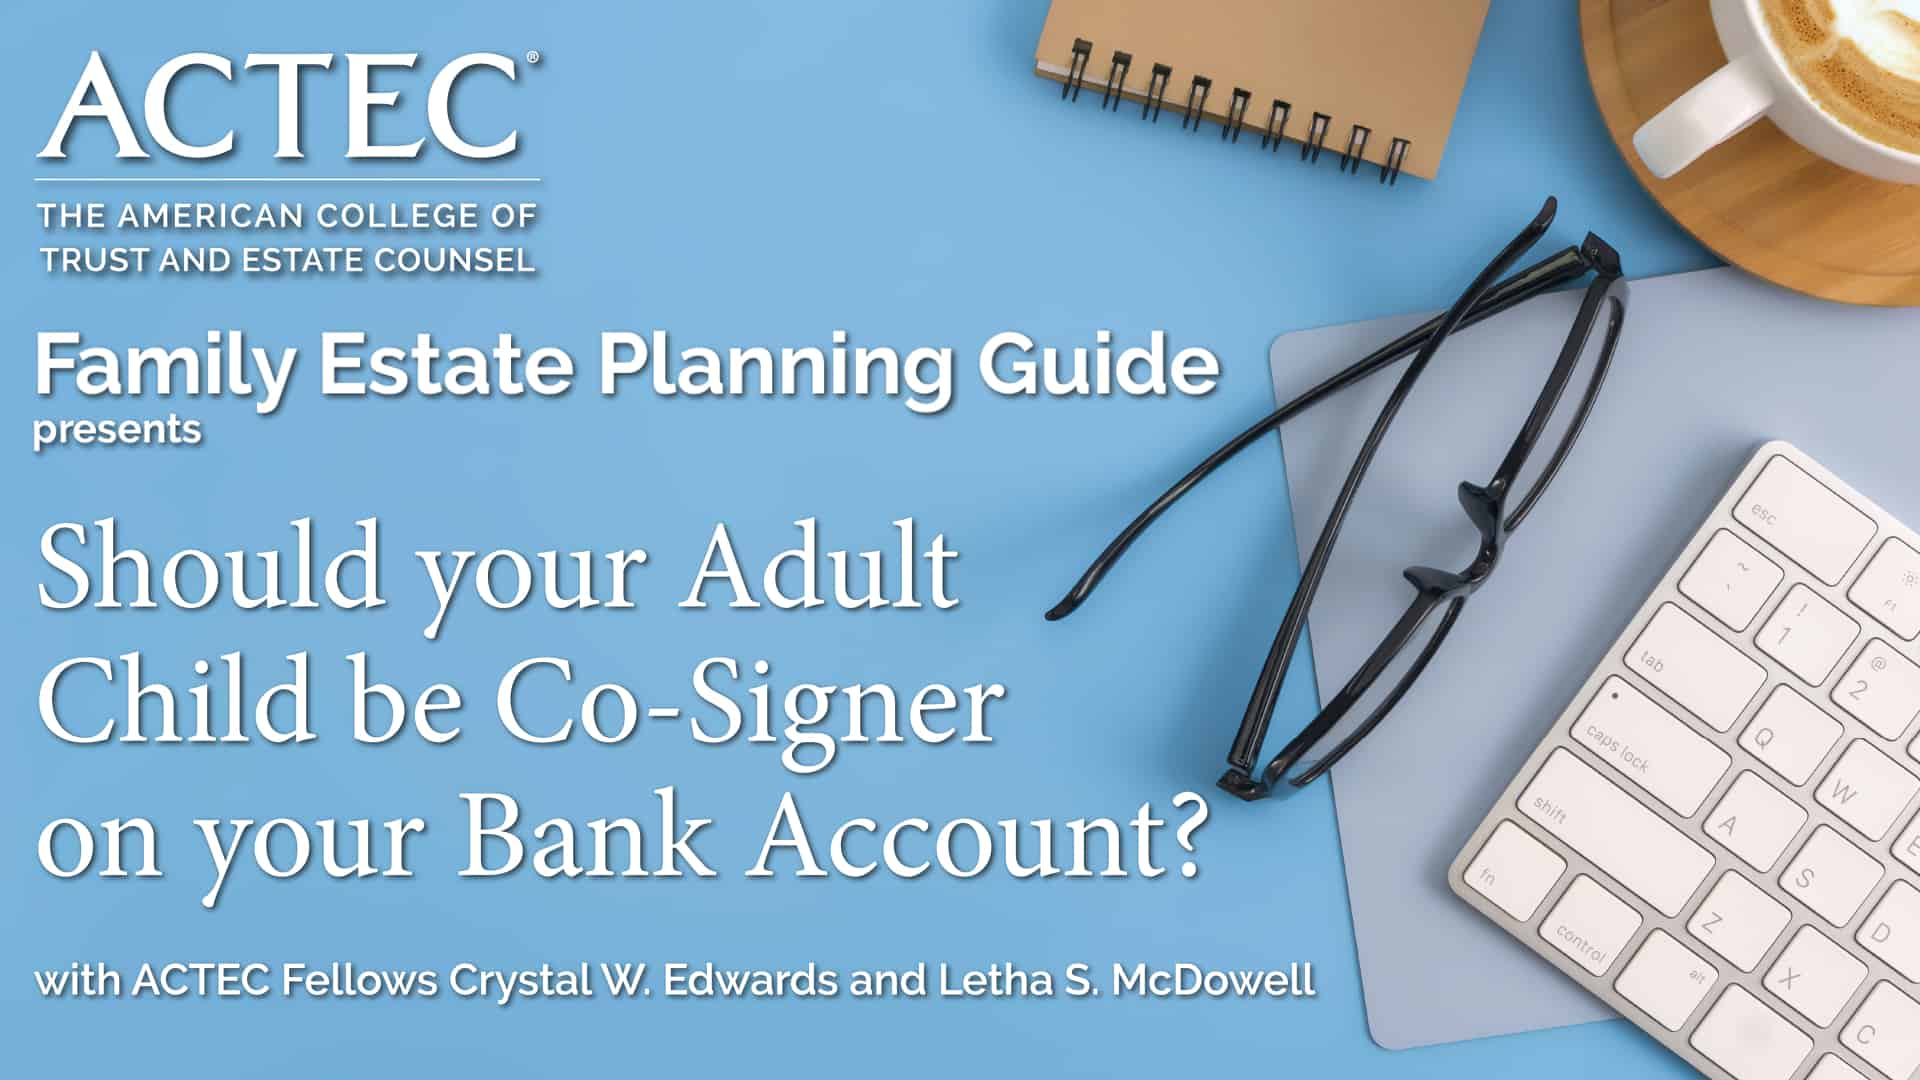 Should your Adult Child be a Co-Signer on your Bank Account?